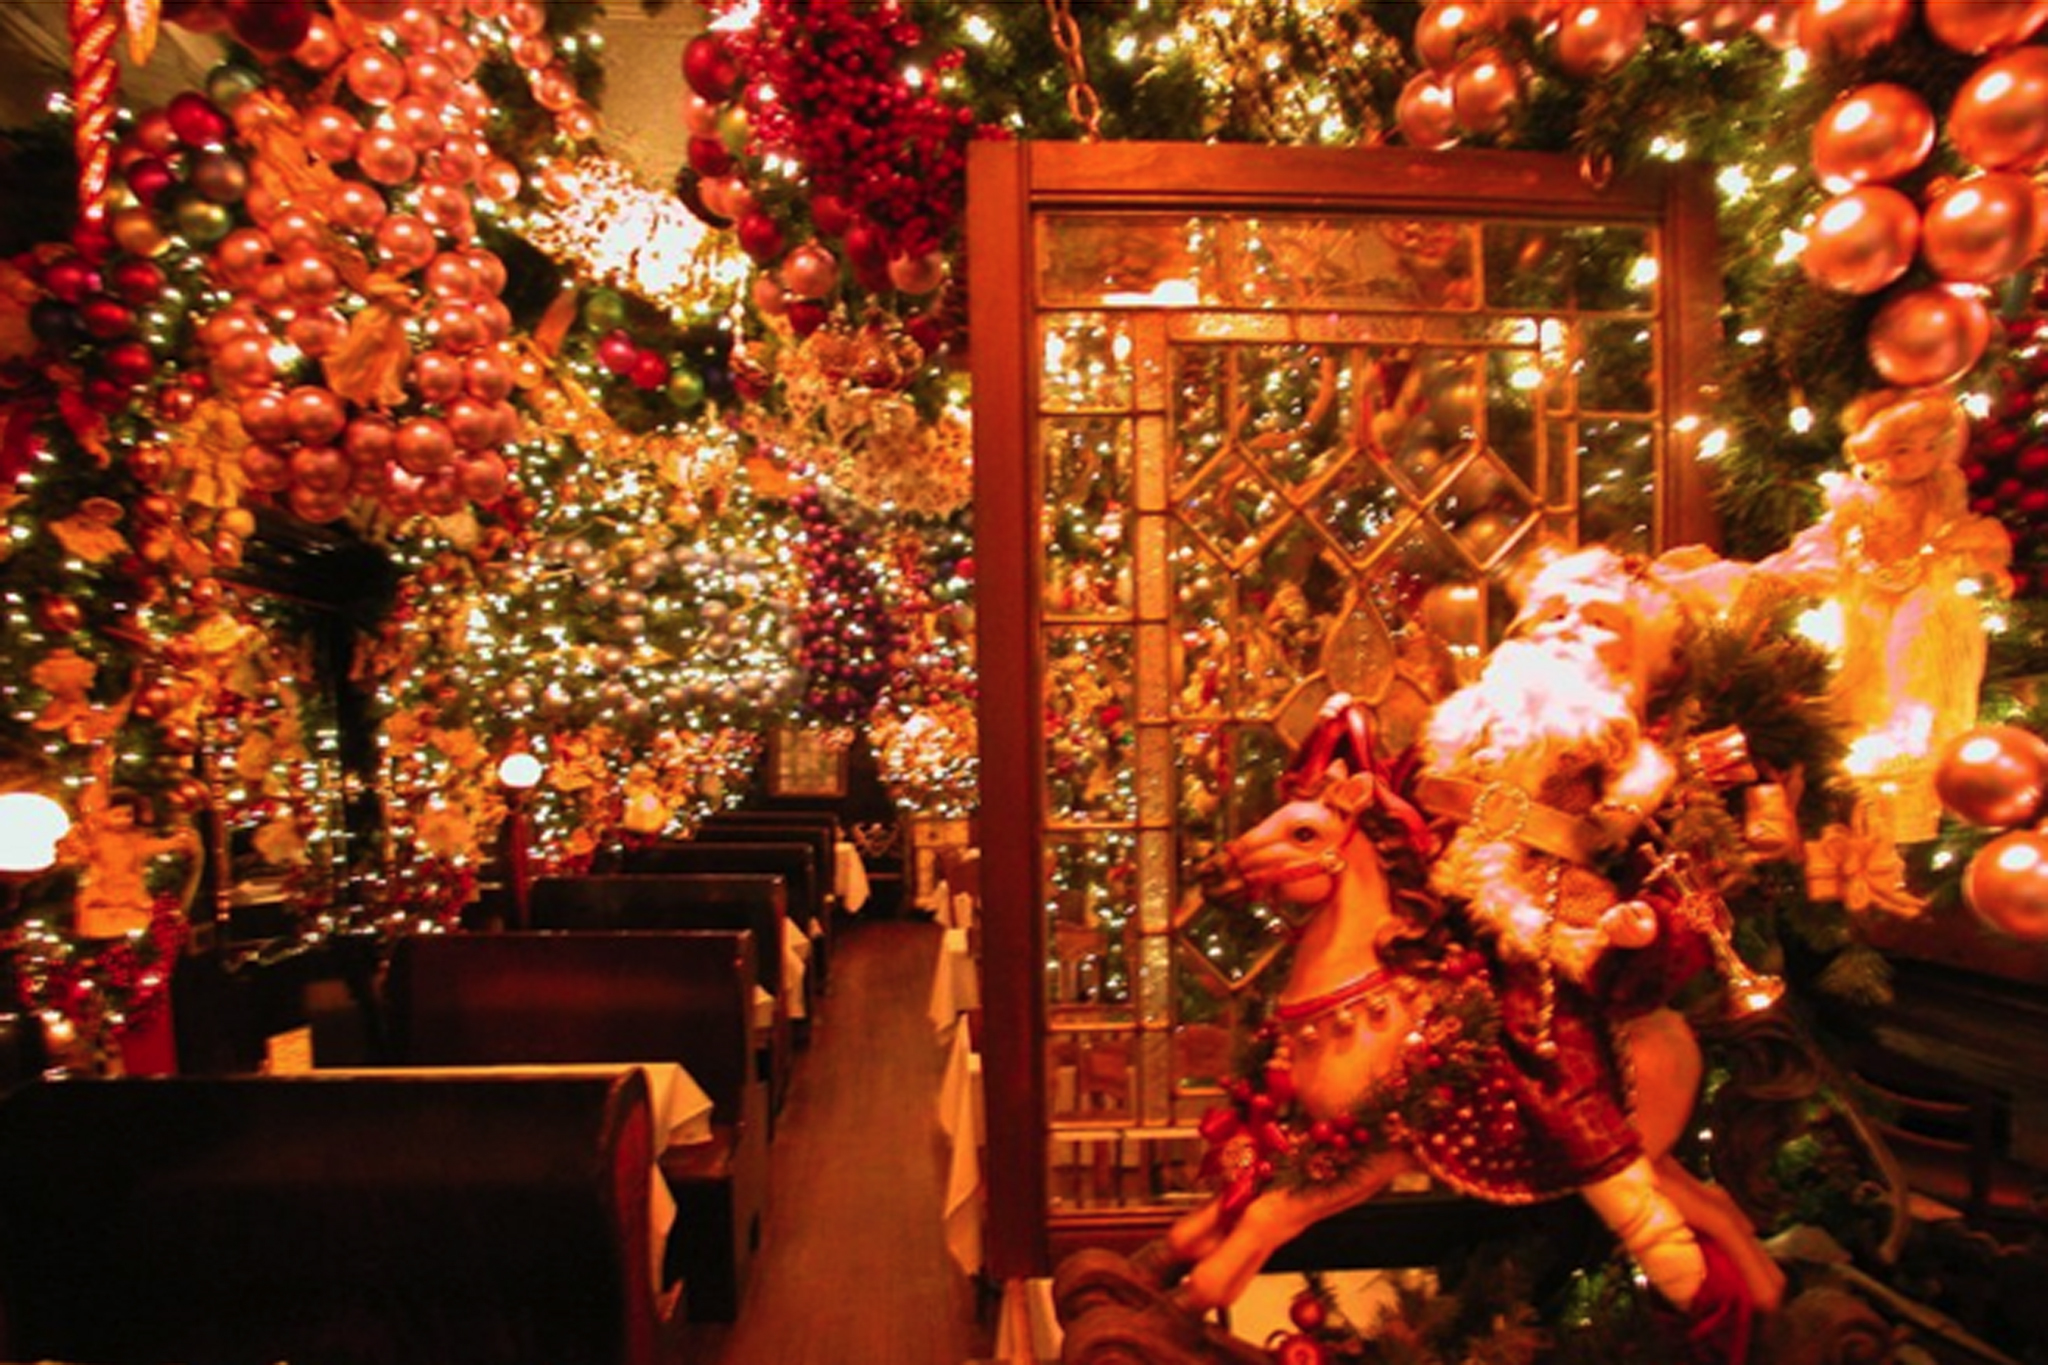 Here's your yearly reminder to go to Rolf's, the restaurant that looks like Christmas threw up on it